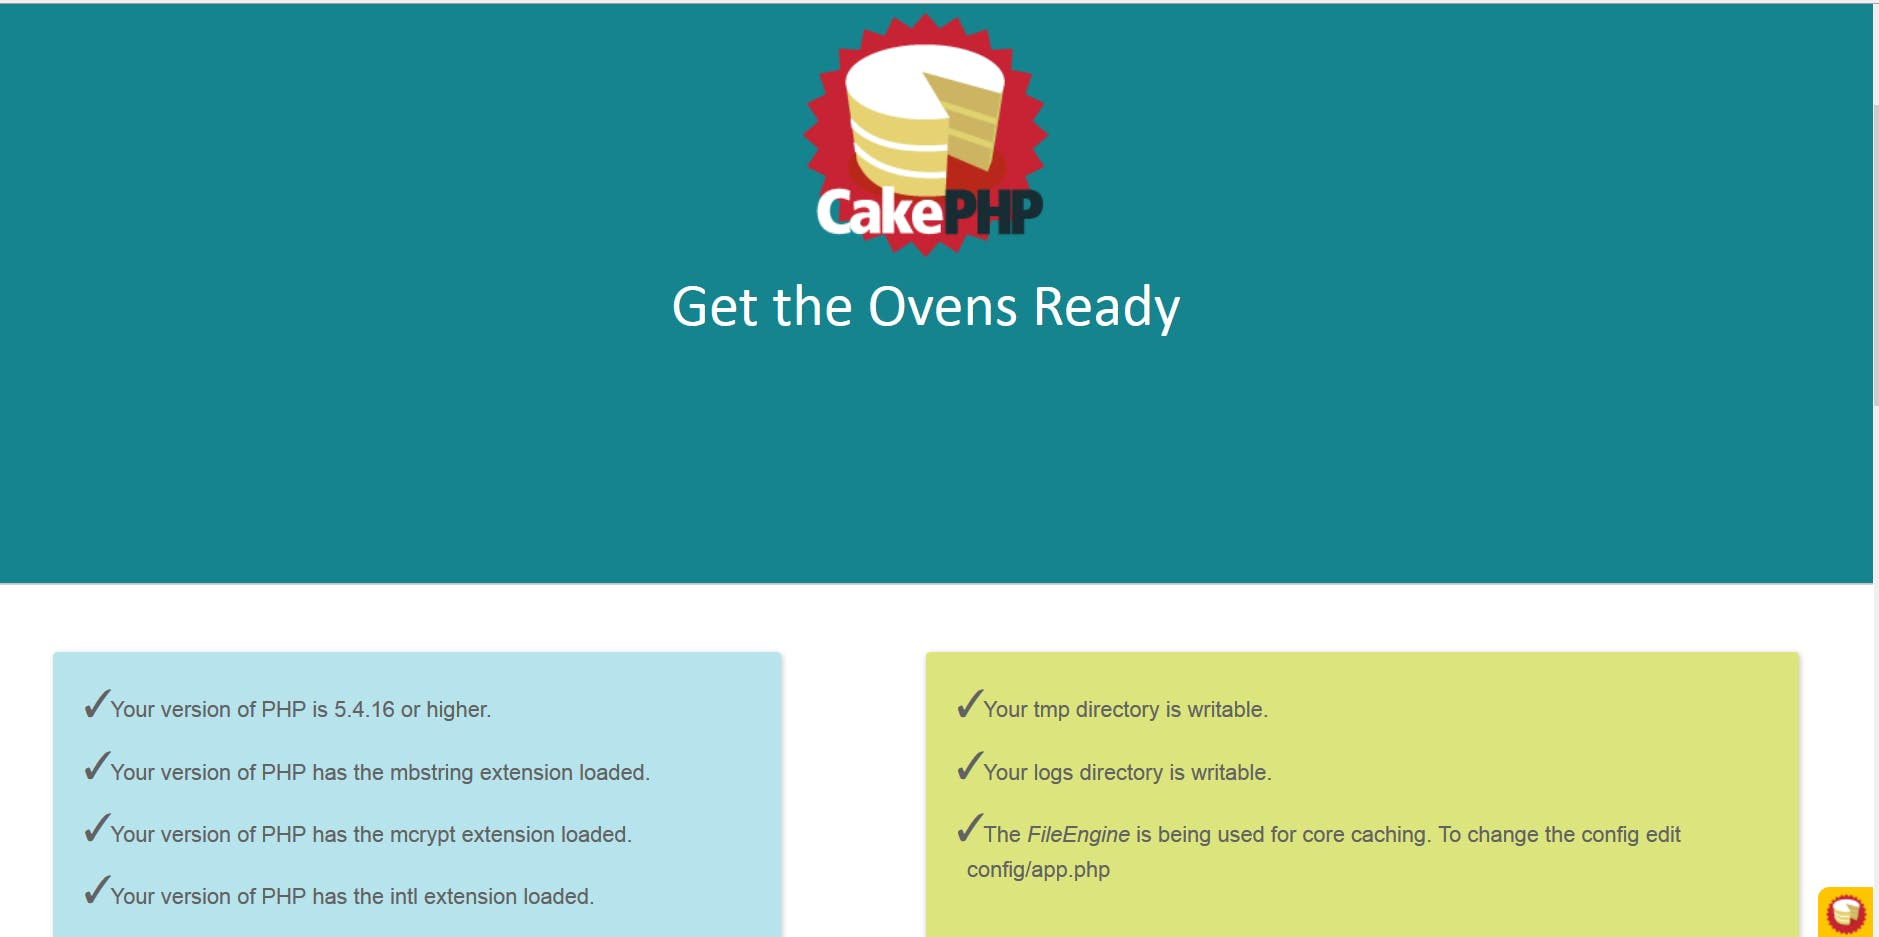 cakephp3.png